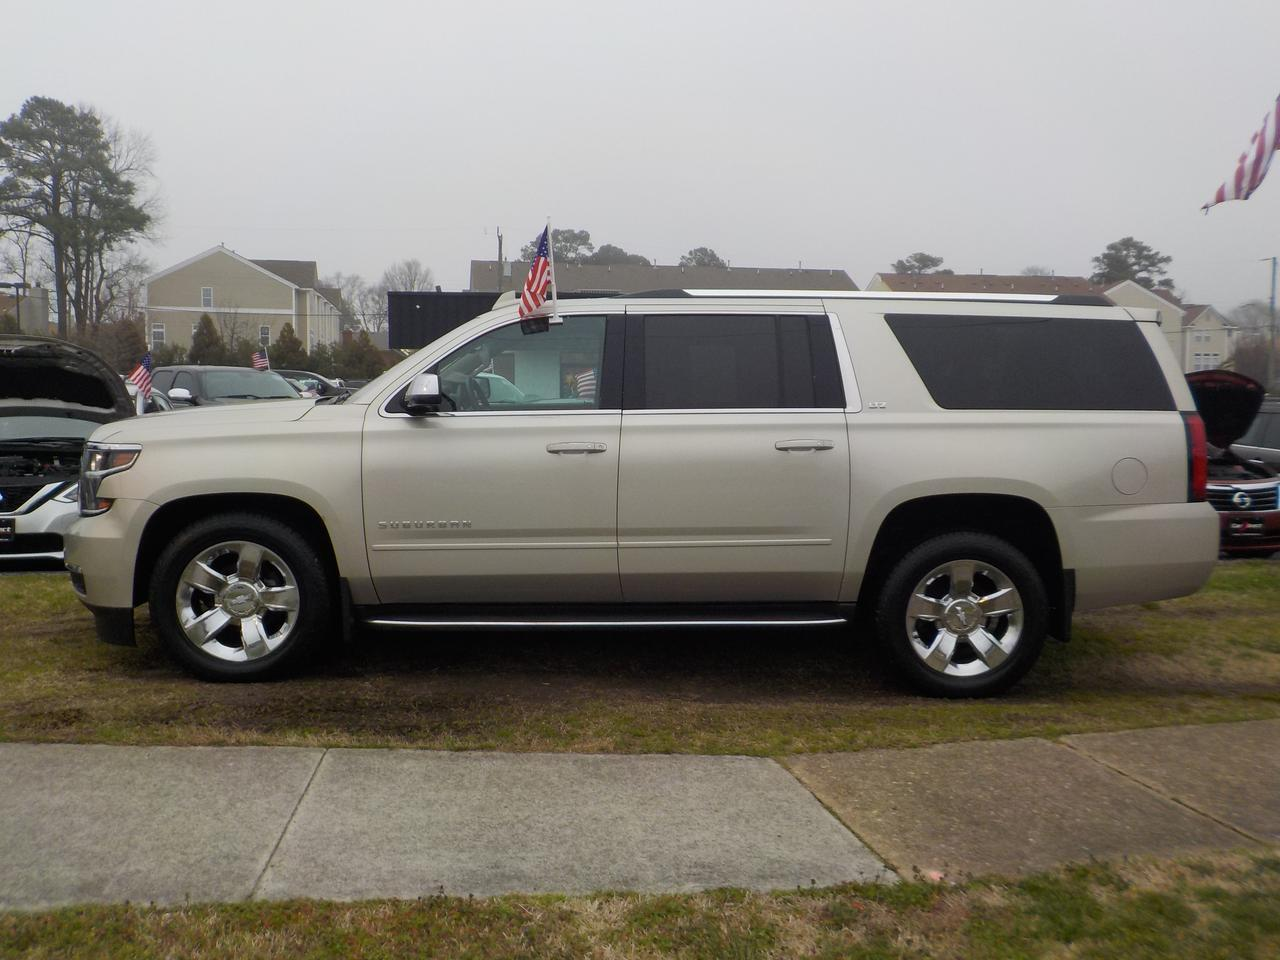 2015 CHEVROLET SUBURBAN LTZ 4X4, WARRANTY, LOADED, CARFAX ONE OWNER, DVD, REMOTE START, TOW, 3RD ROW, NAVIGATION, ROOF RACKS Virginia Beach VA